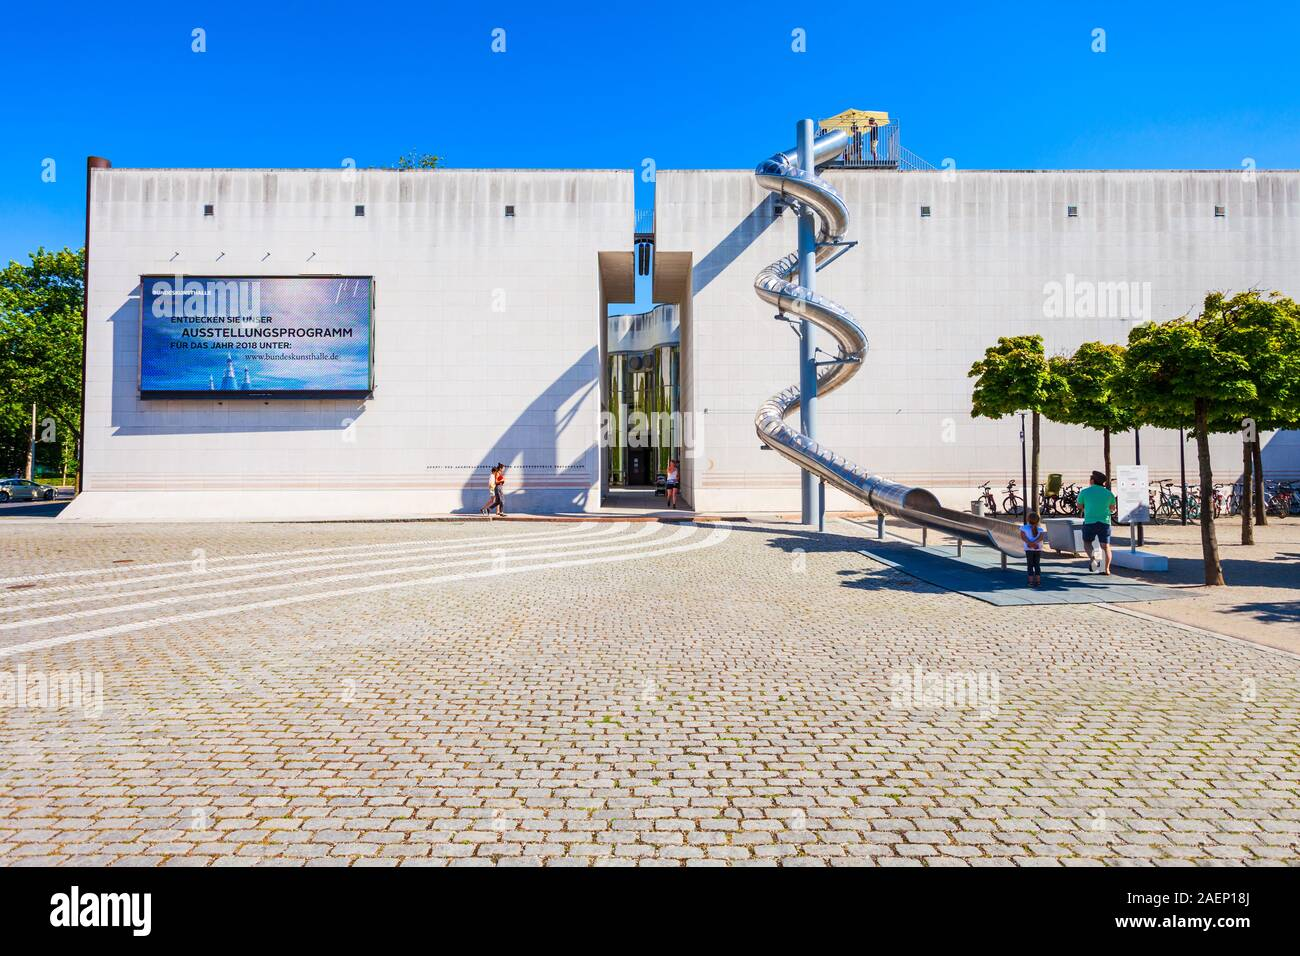 BONN, GERMANY - JUNE 29, 2018: Bundeskunsthalle or federal art and exhibition hall in Bonn city, Germany Stock Photo